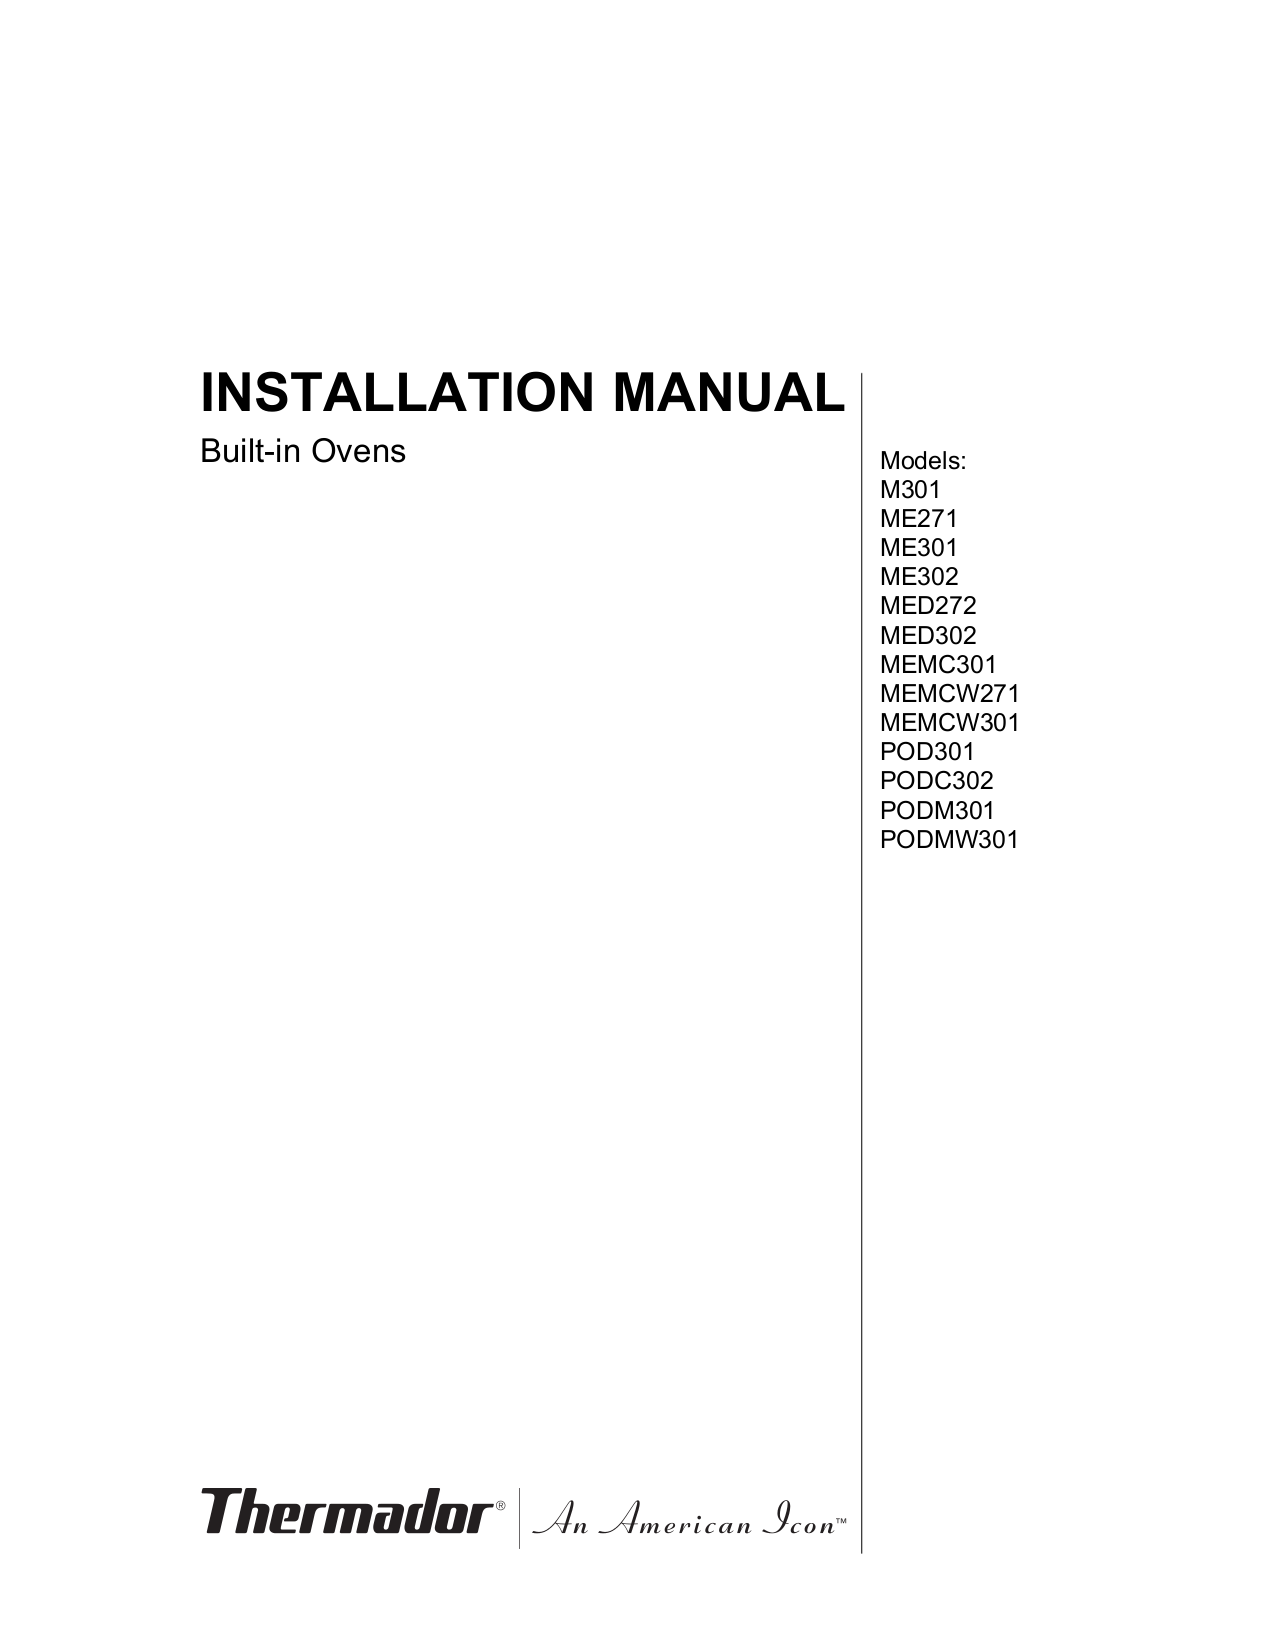 pdf for Thermador Oven PO301 manual